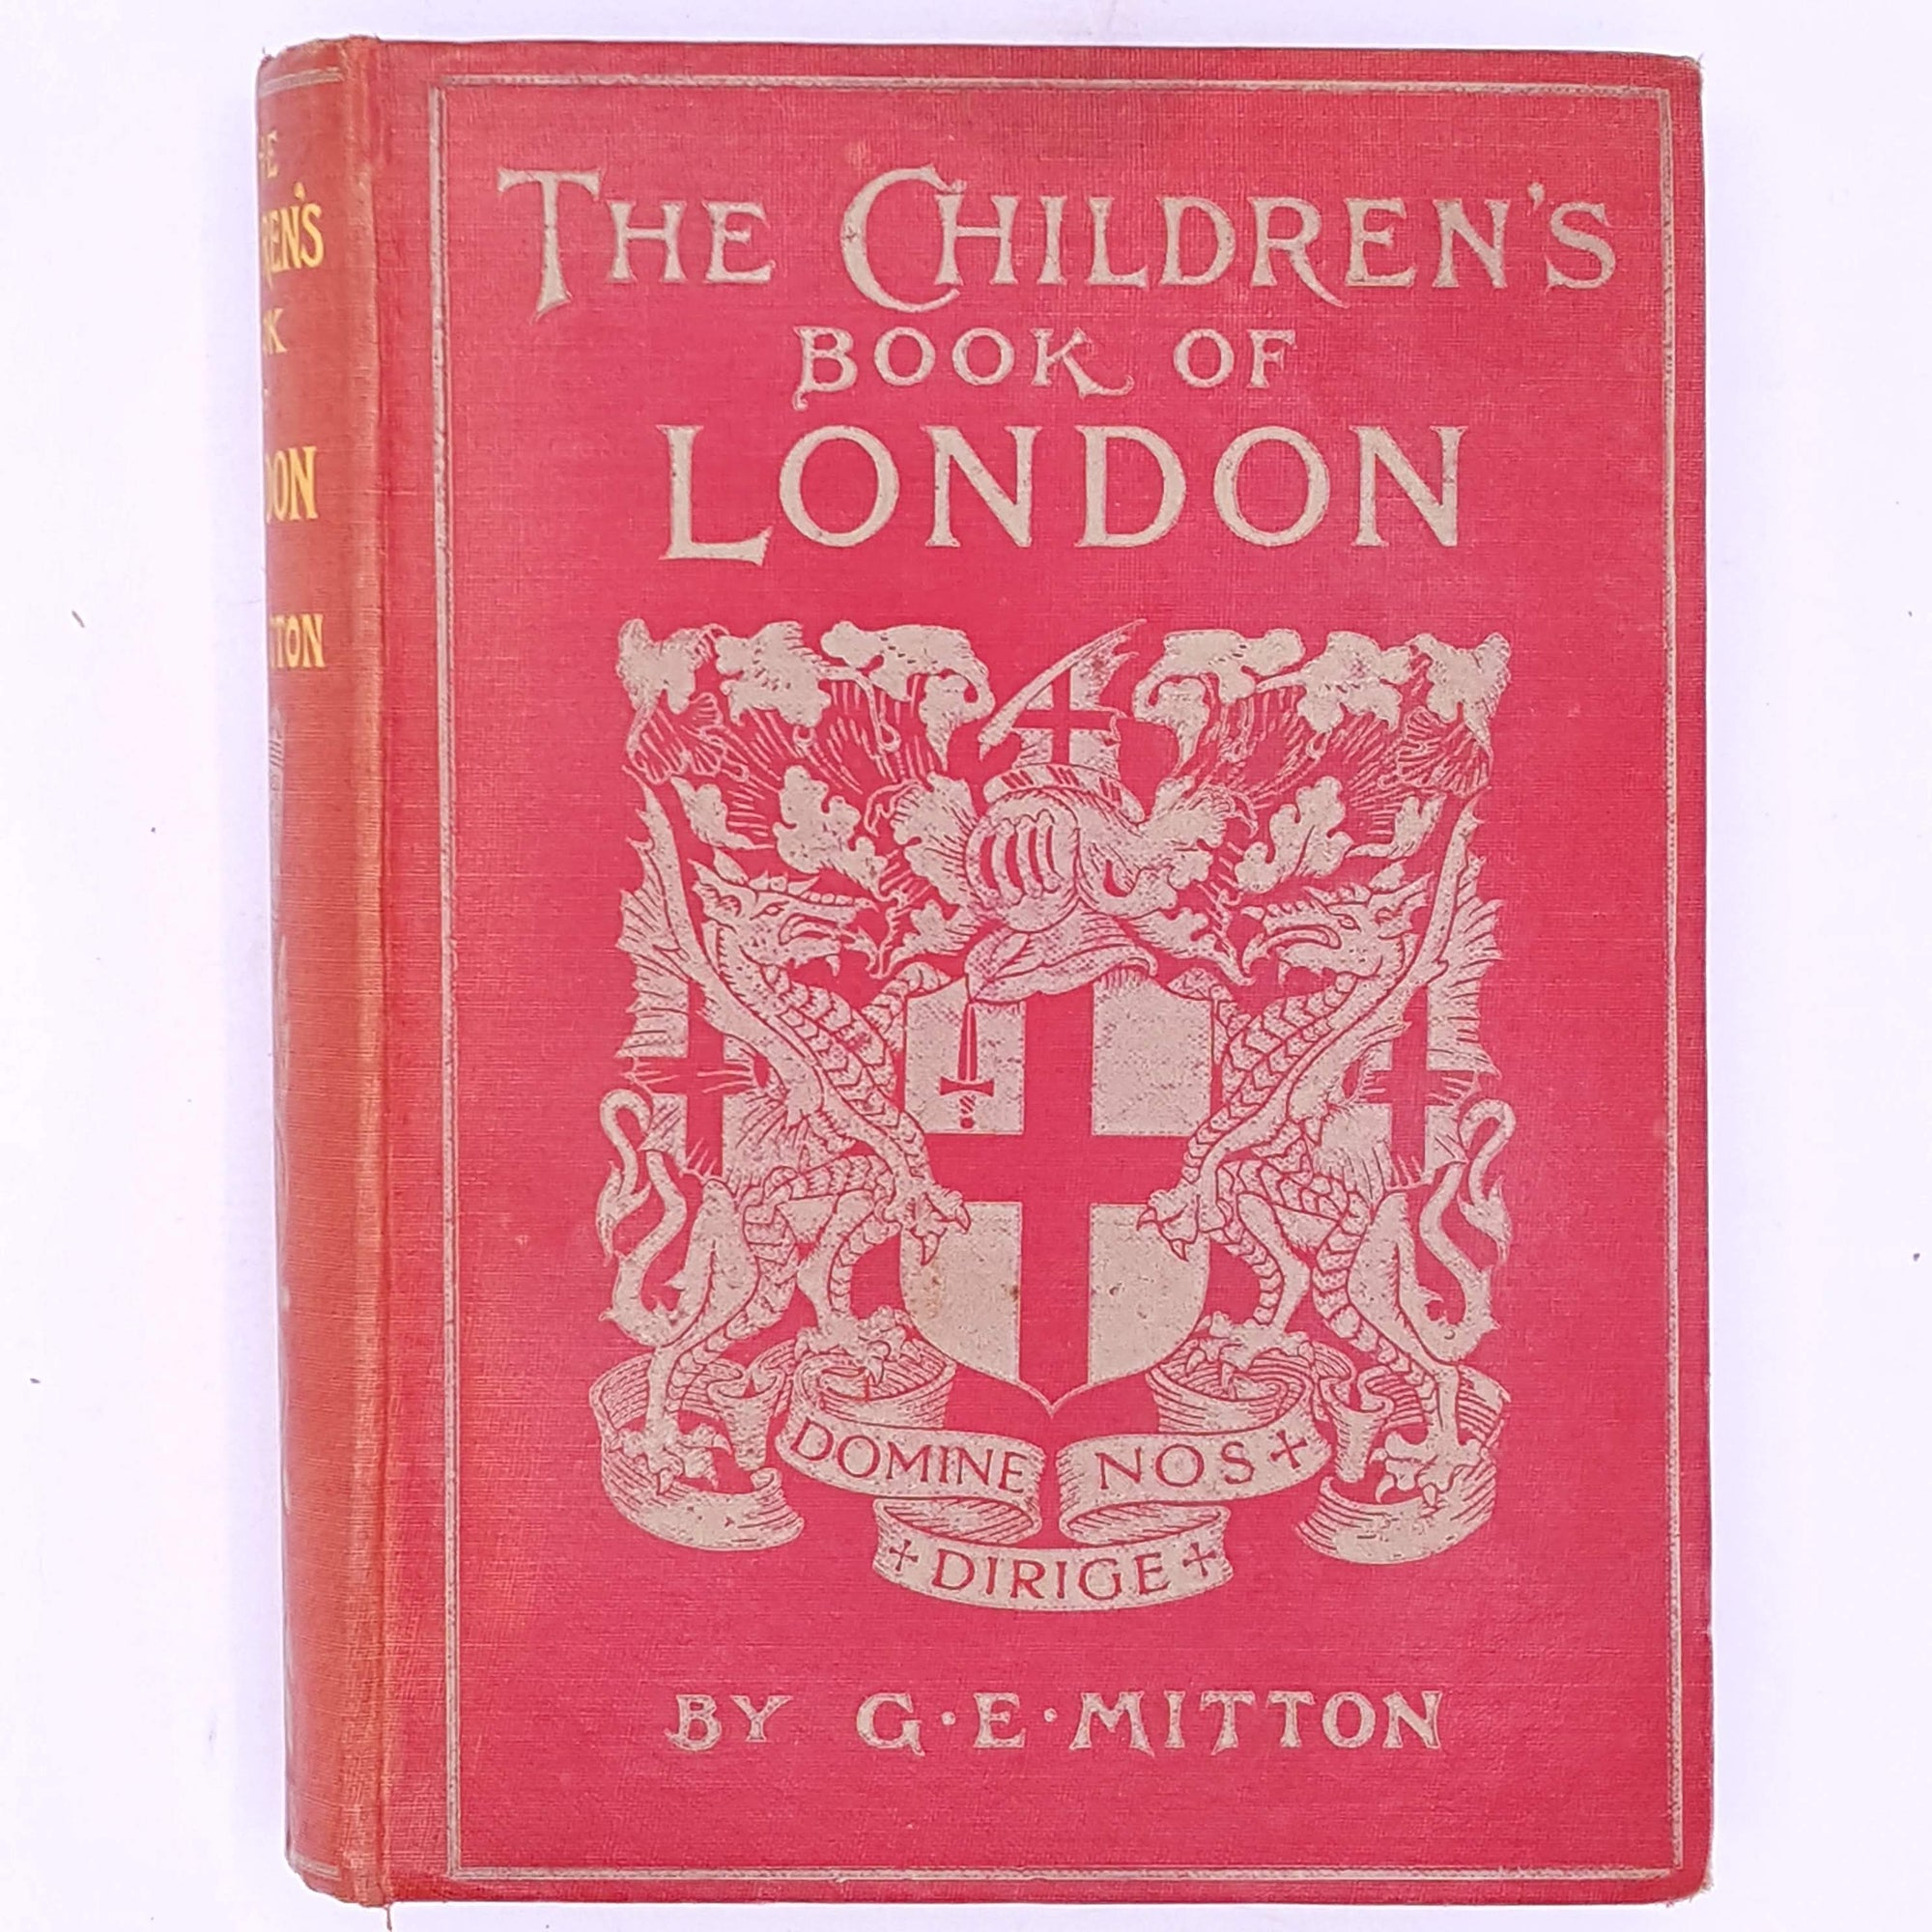 The Childrens Book Of London By G.E. Mitton 1928.